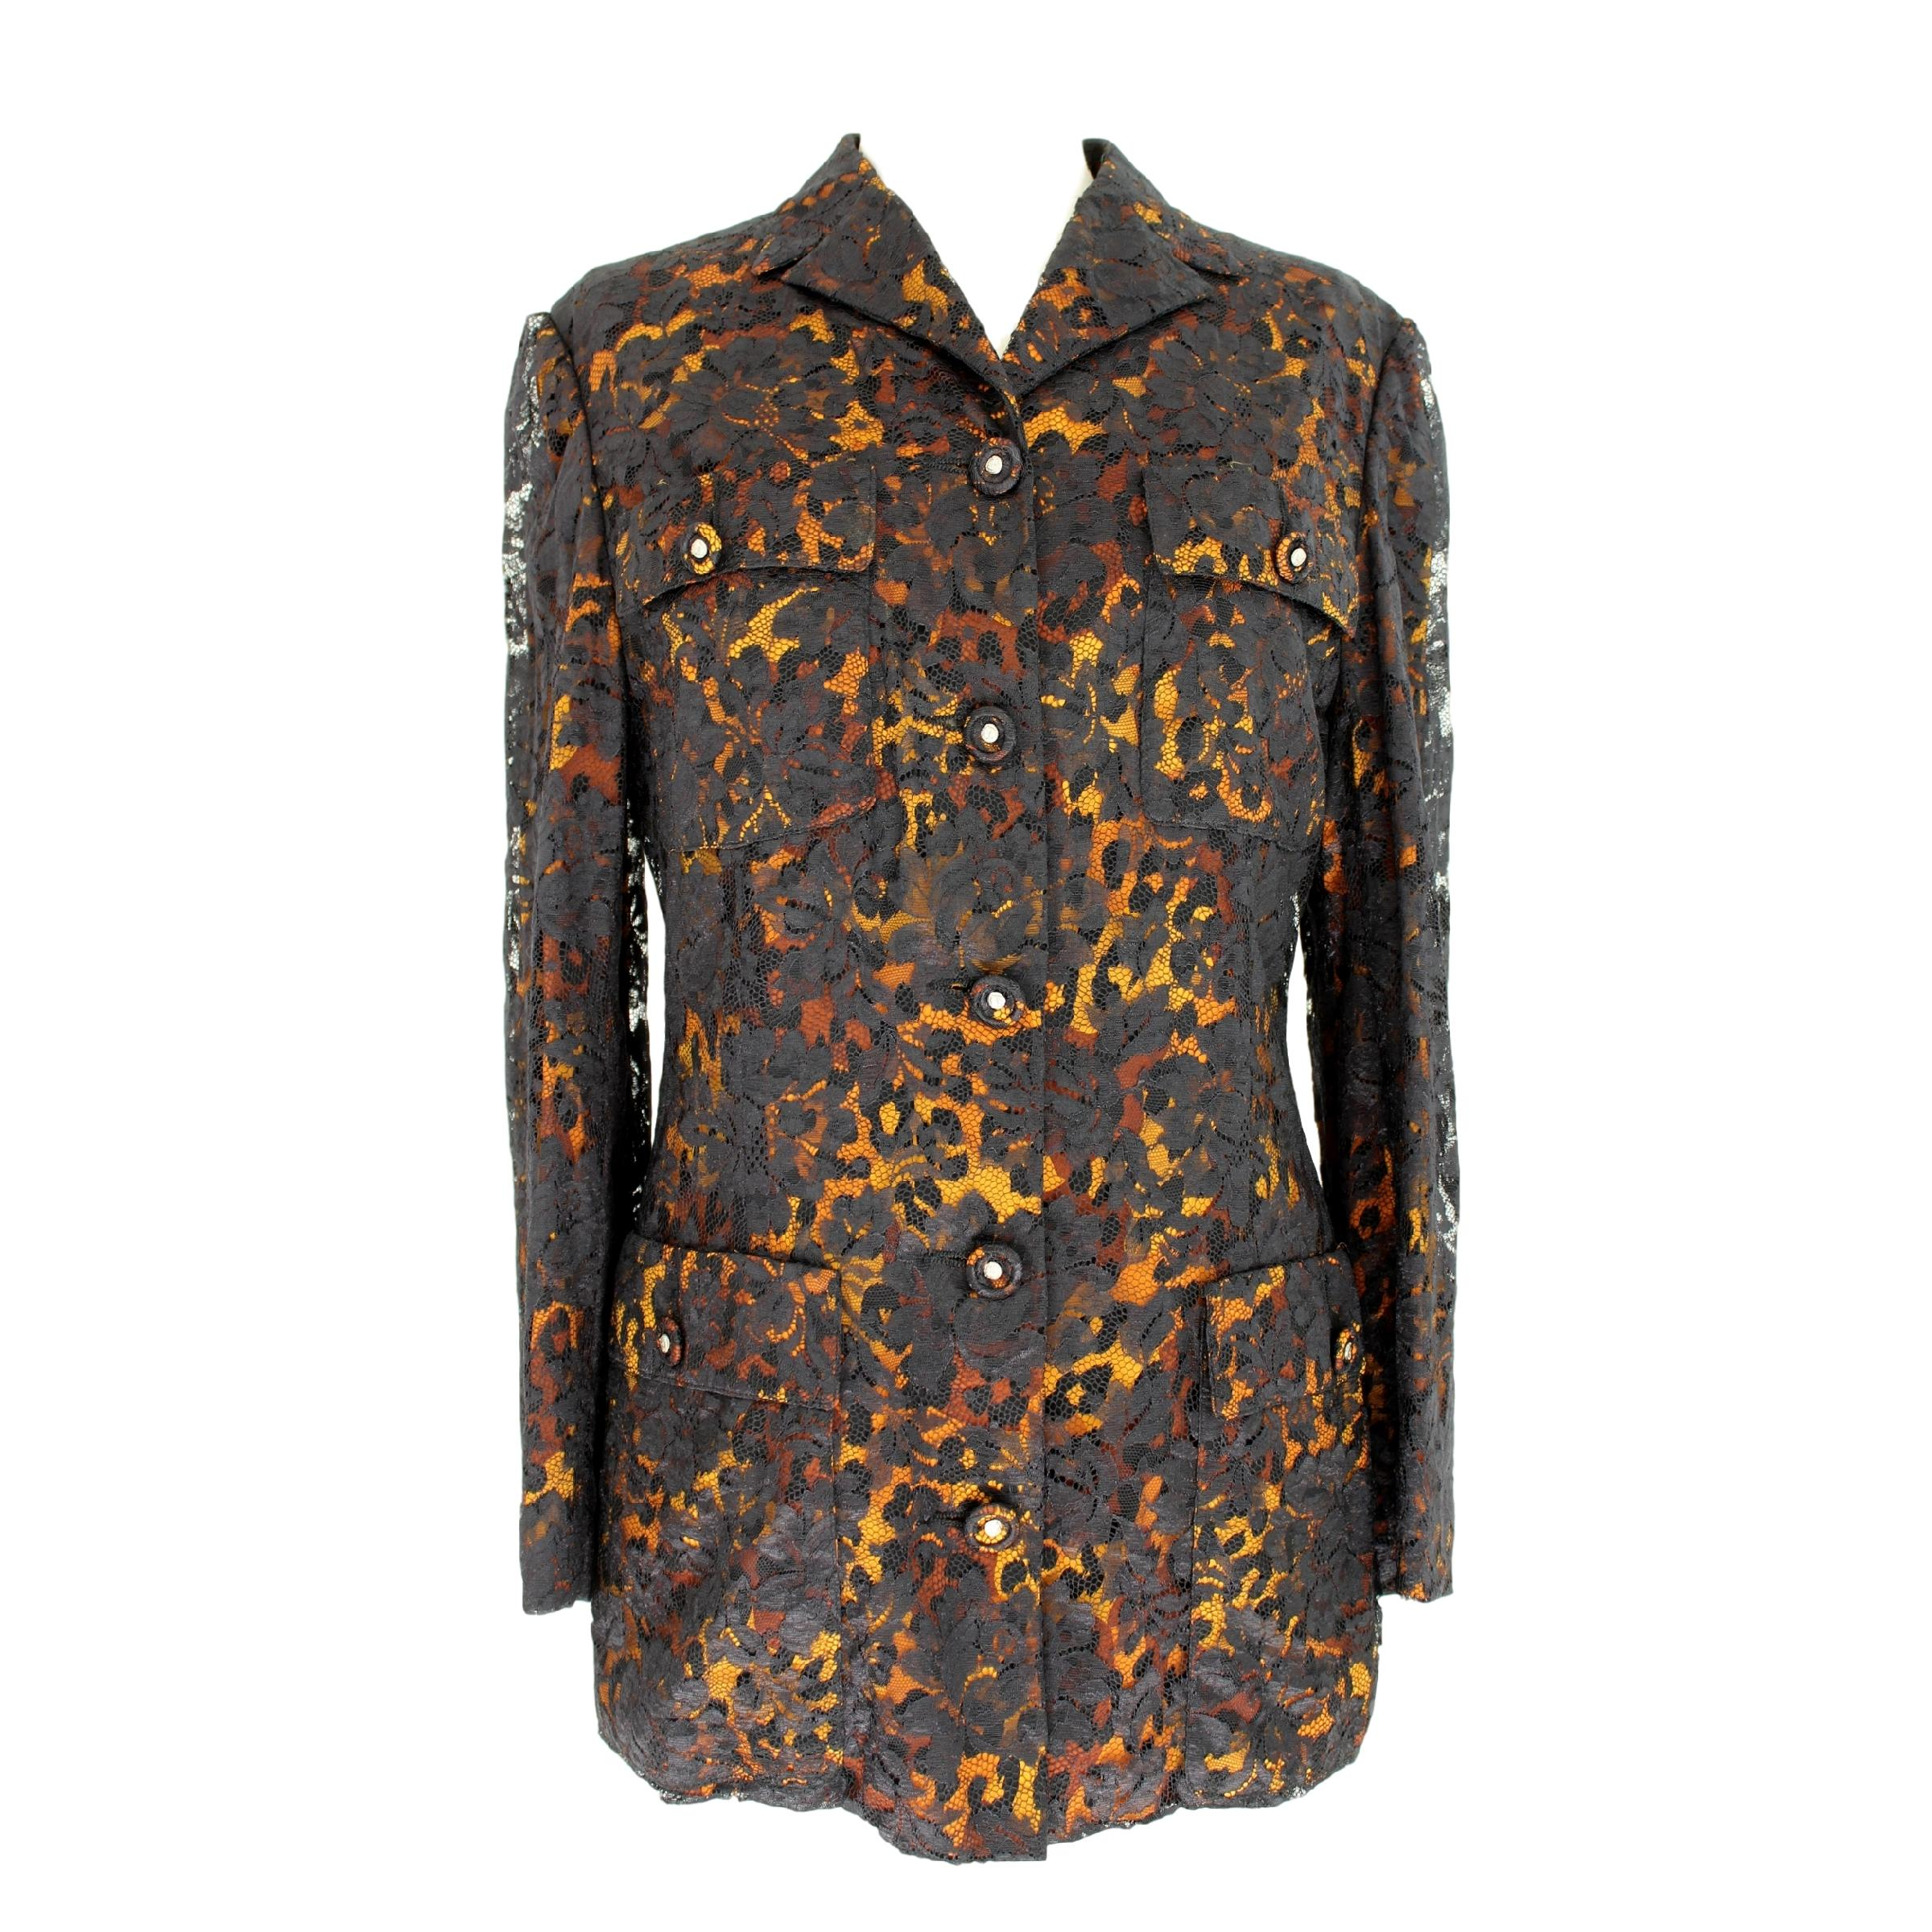 8676a0786fc732 Vintage Gianni Versace Jackets - 122 For Sale at 1stdibs